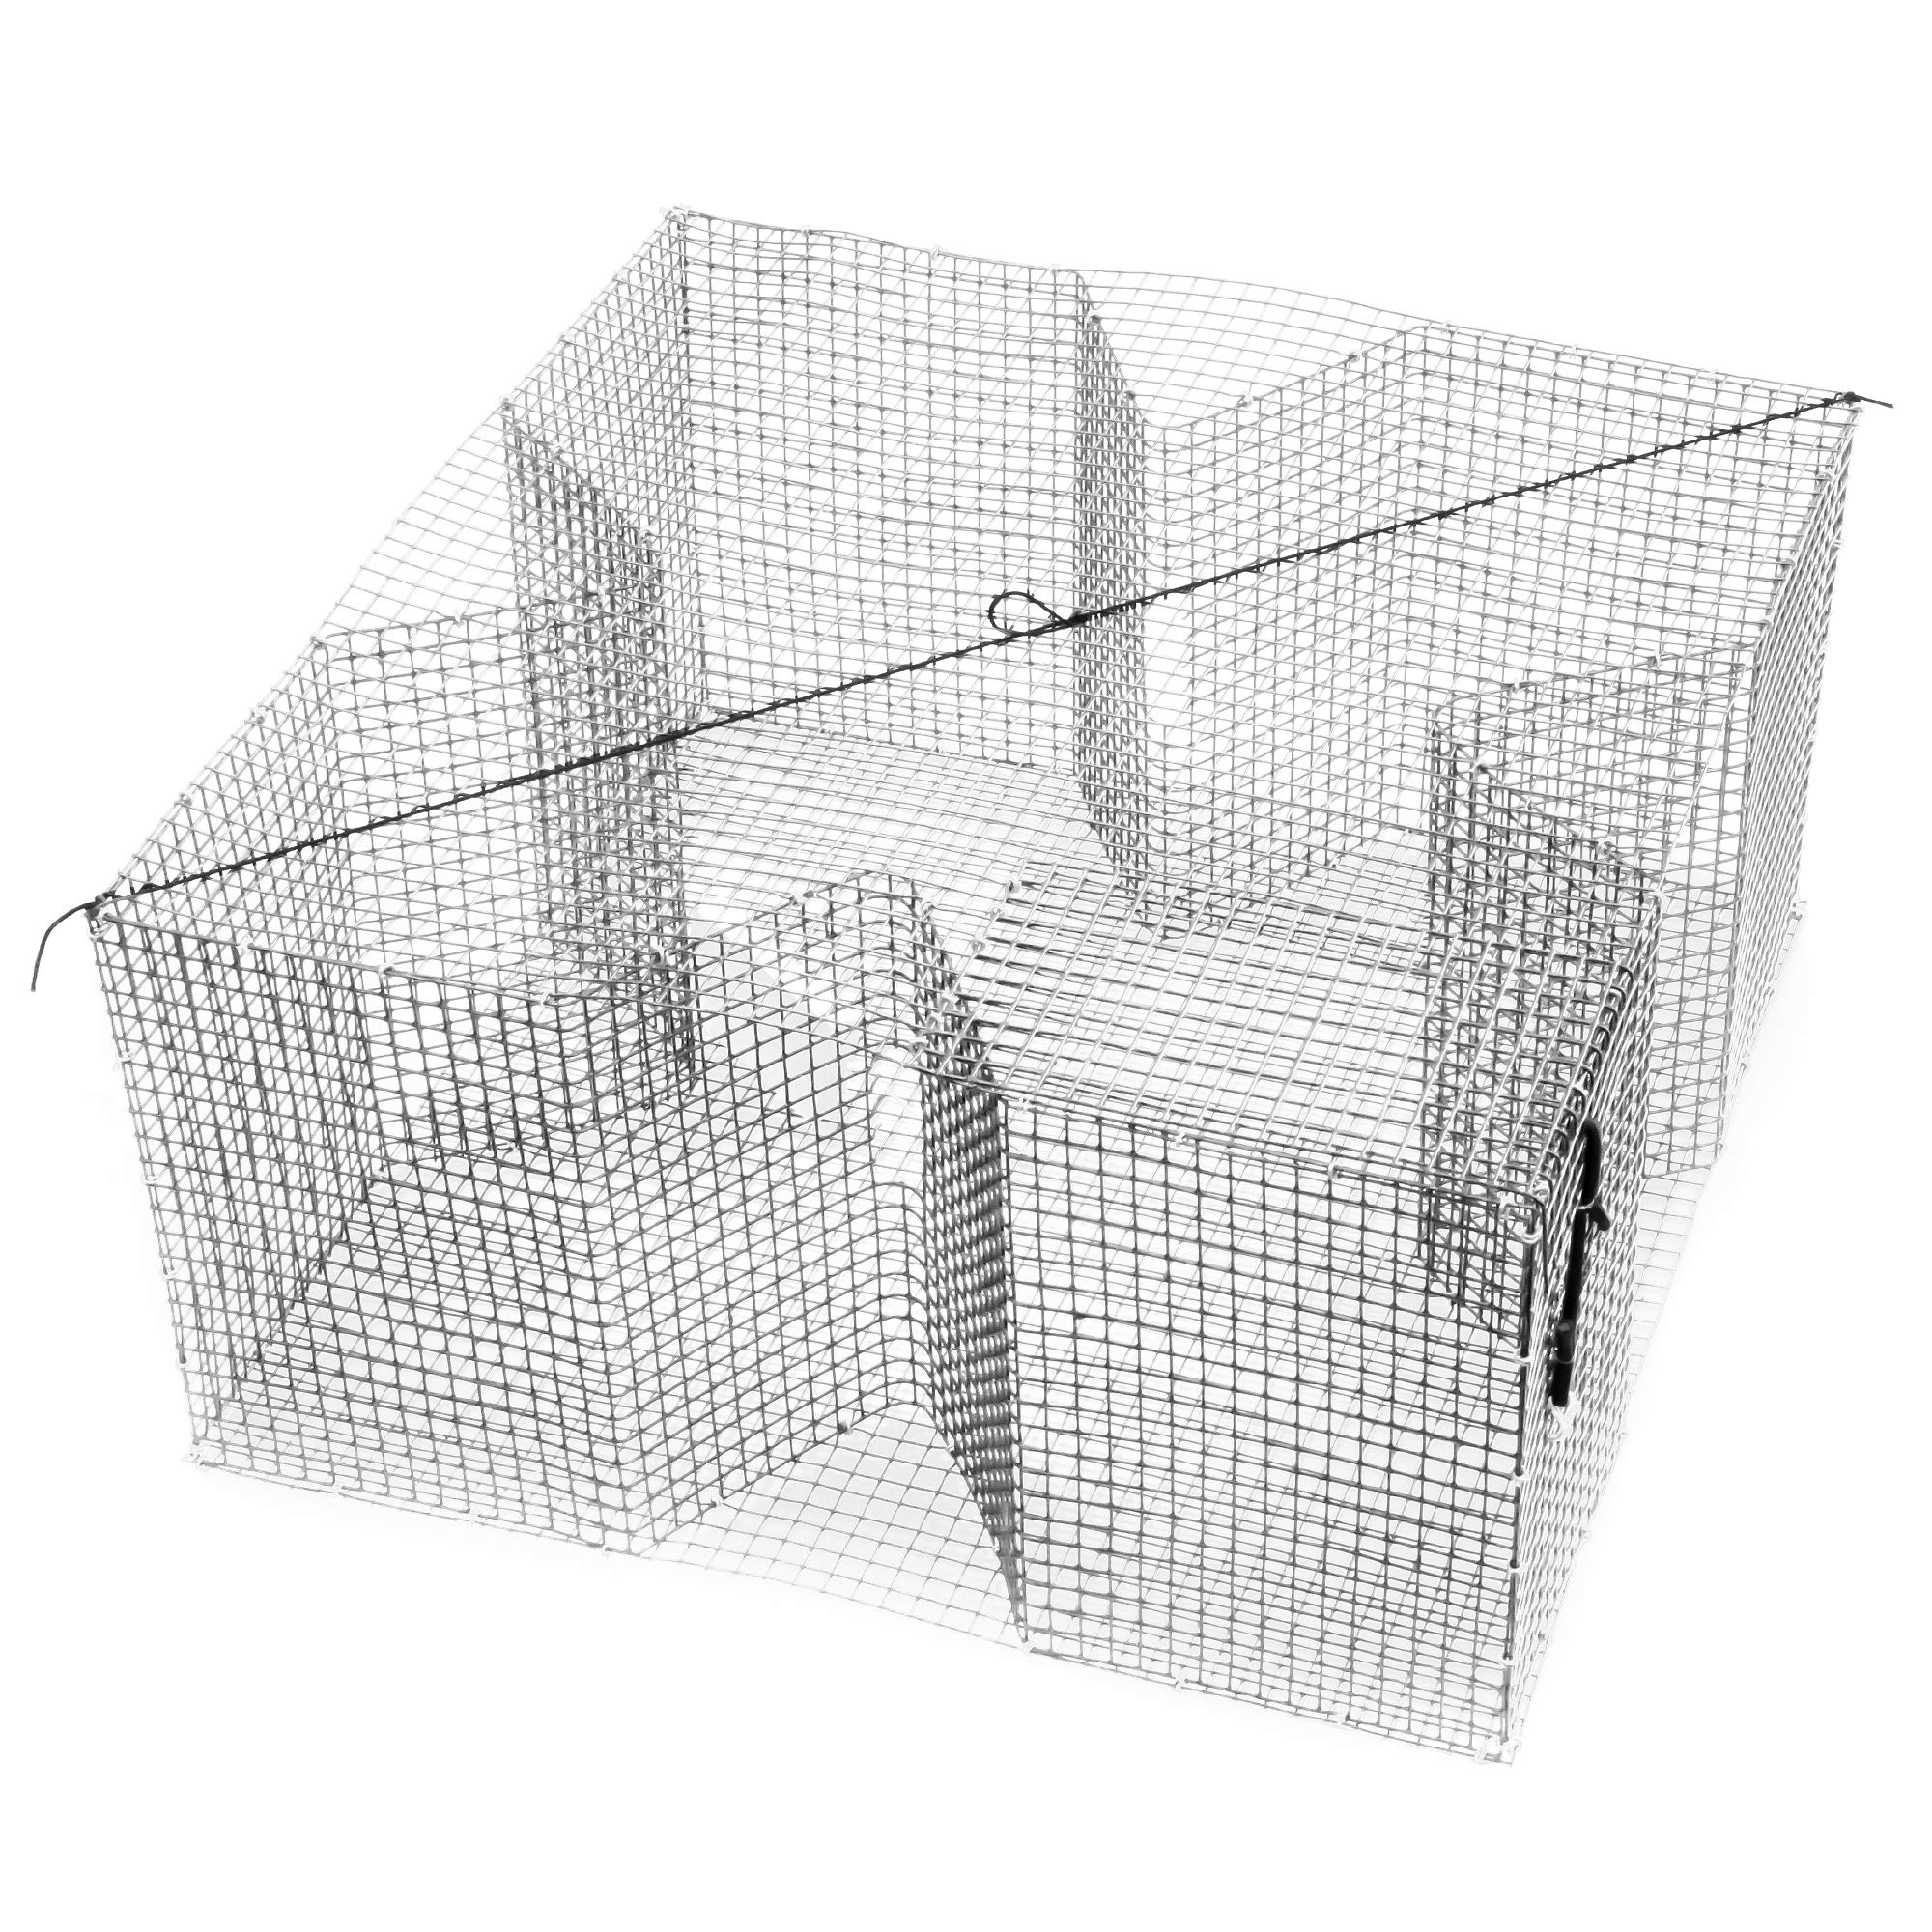 Nets & More Bait Trap. 24'' x 24'', 12'' deep. White PVC Coated Wire for Bream and Other Bait Fish. Made in The USA.